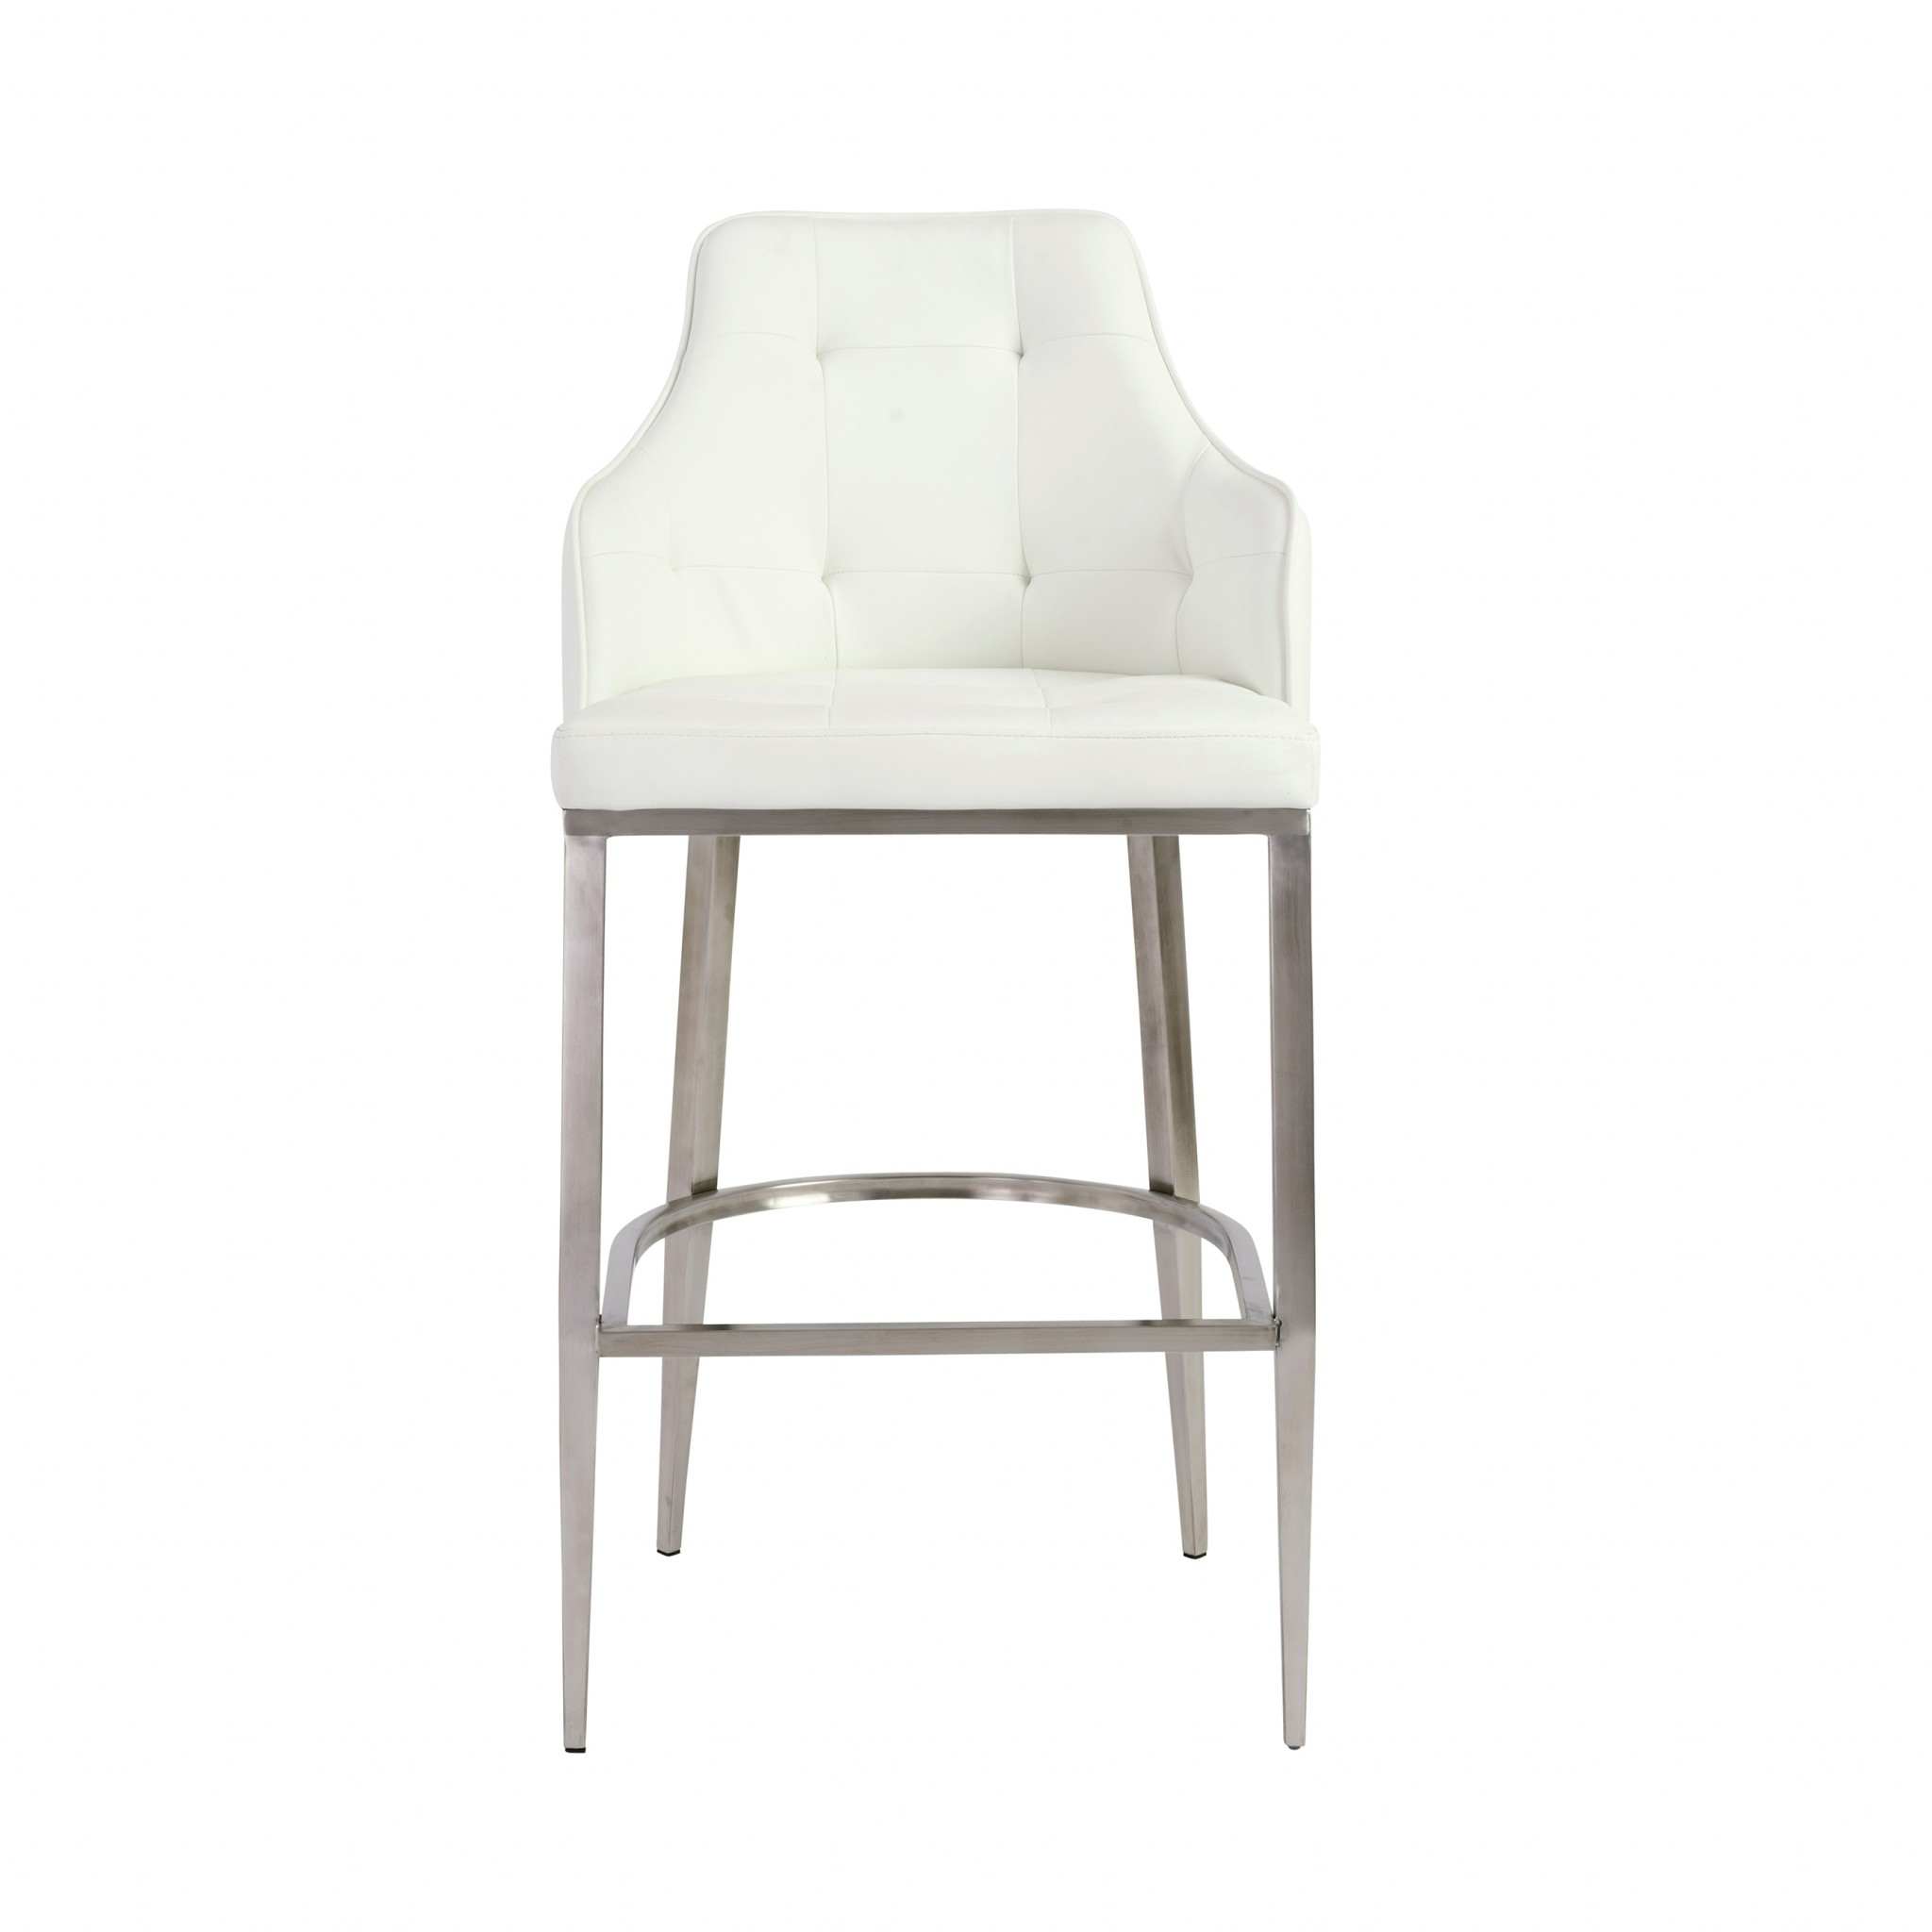 """22.05"""" X 22.84"""" X 44.1"""" White Leatherette Bar Stool with Brushed Stainless Steel Legs"""